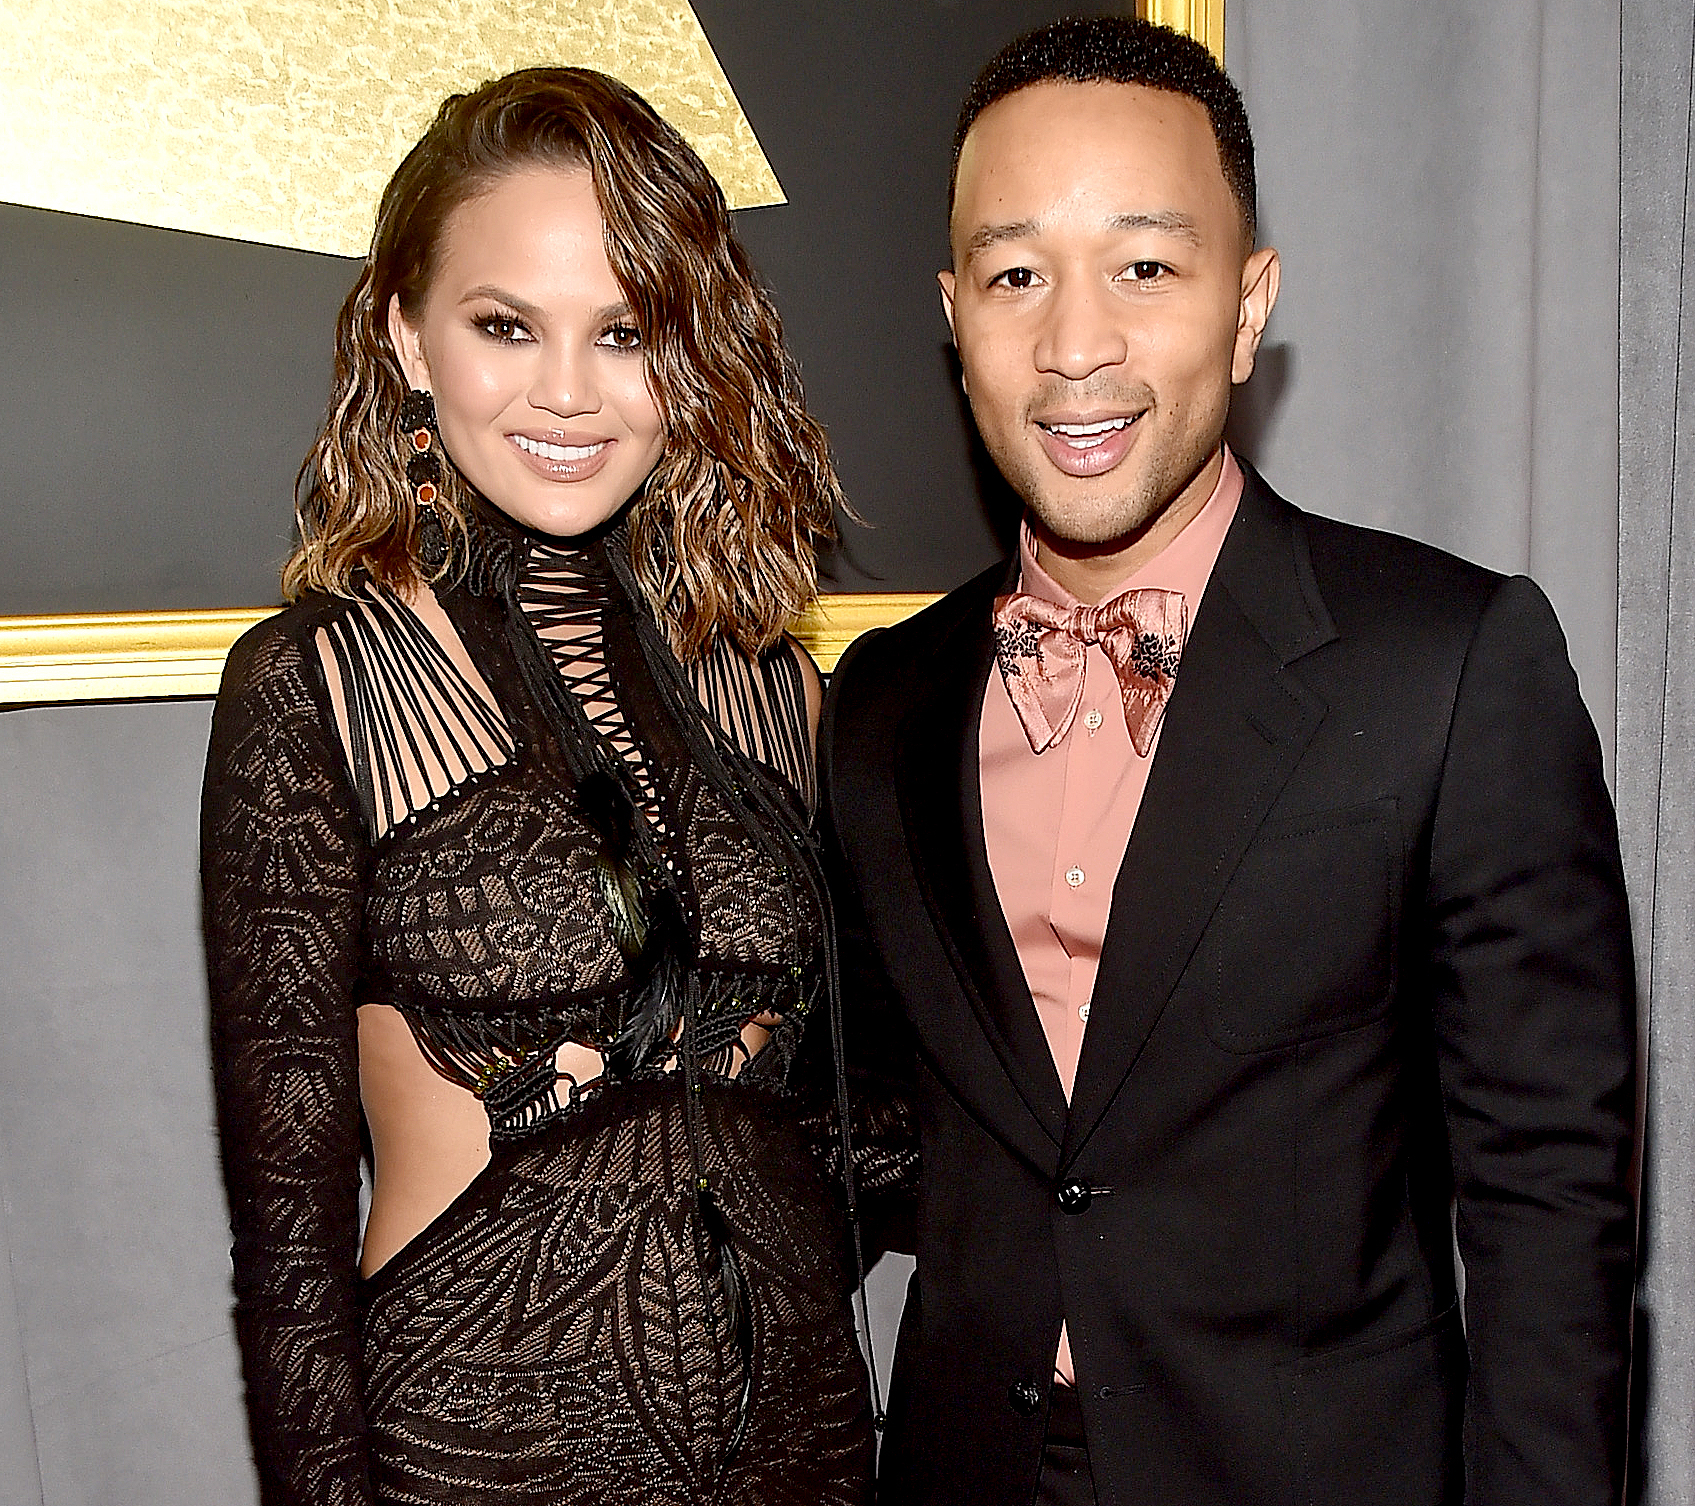 Chrissy Teigen and John Legend attends The 59th GRAMMY Awards at STAPLES Center on February 12, 2017 in Los Angeles, California.